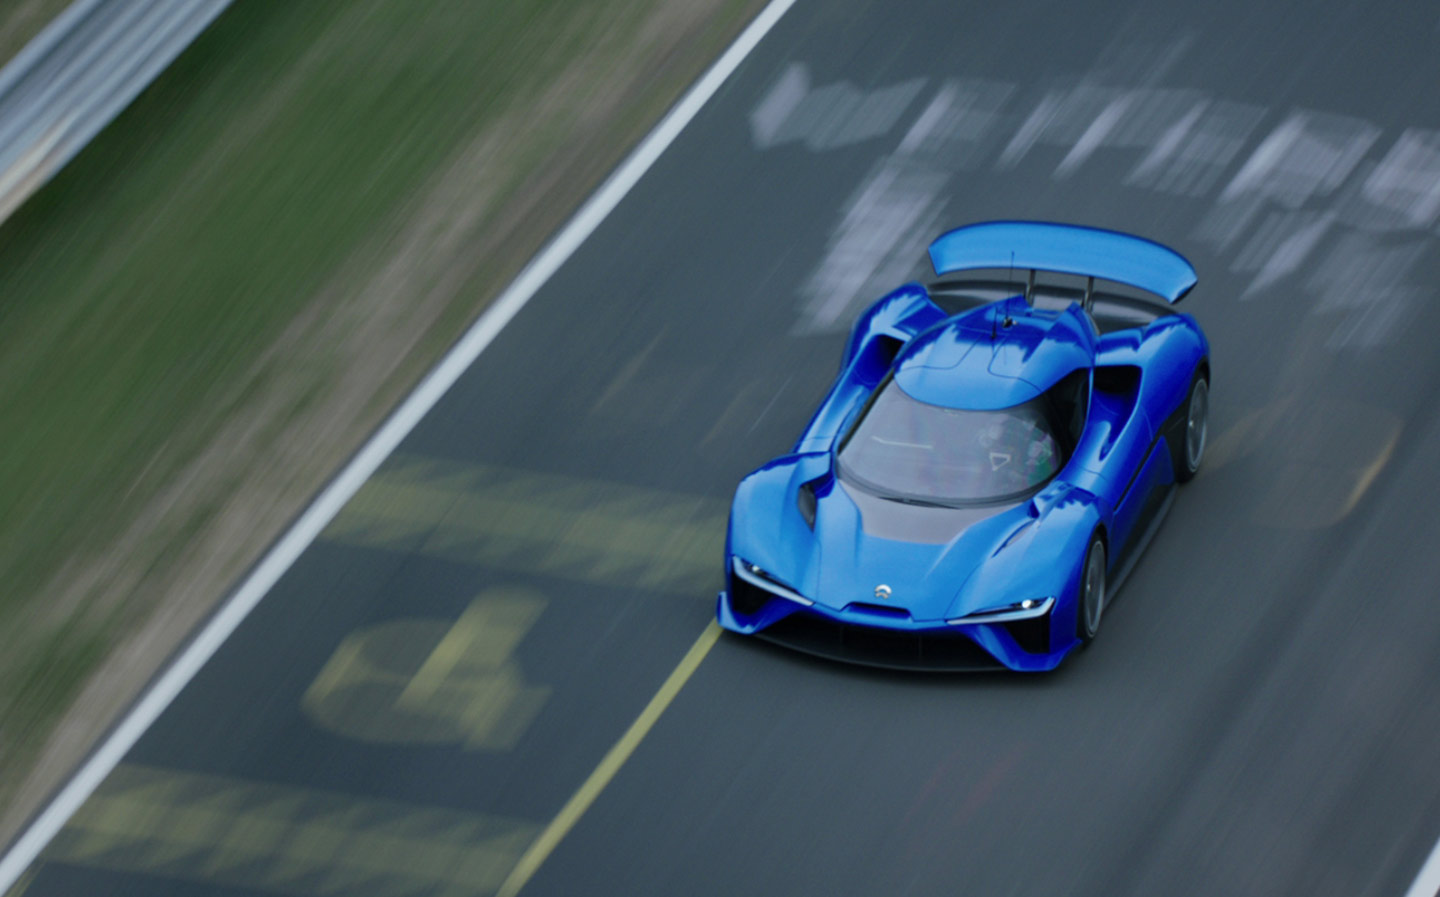 The Fastest Road Car Ever to Lap the Nürburgring is Currently the All-Electric NIO EP9